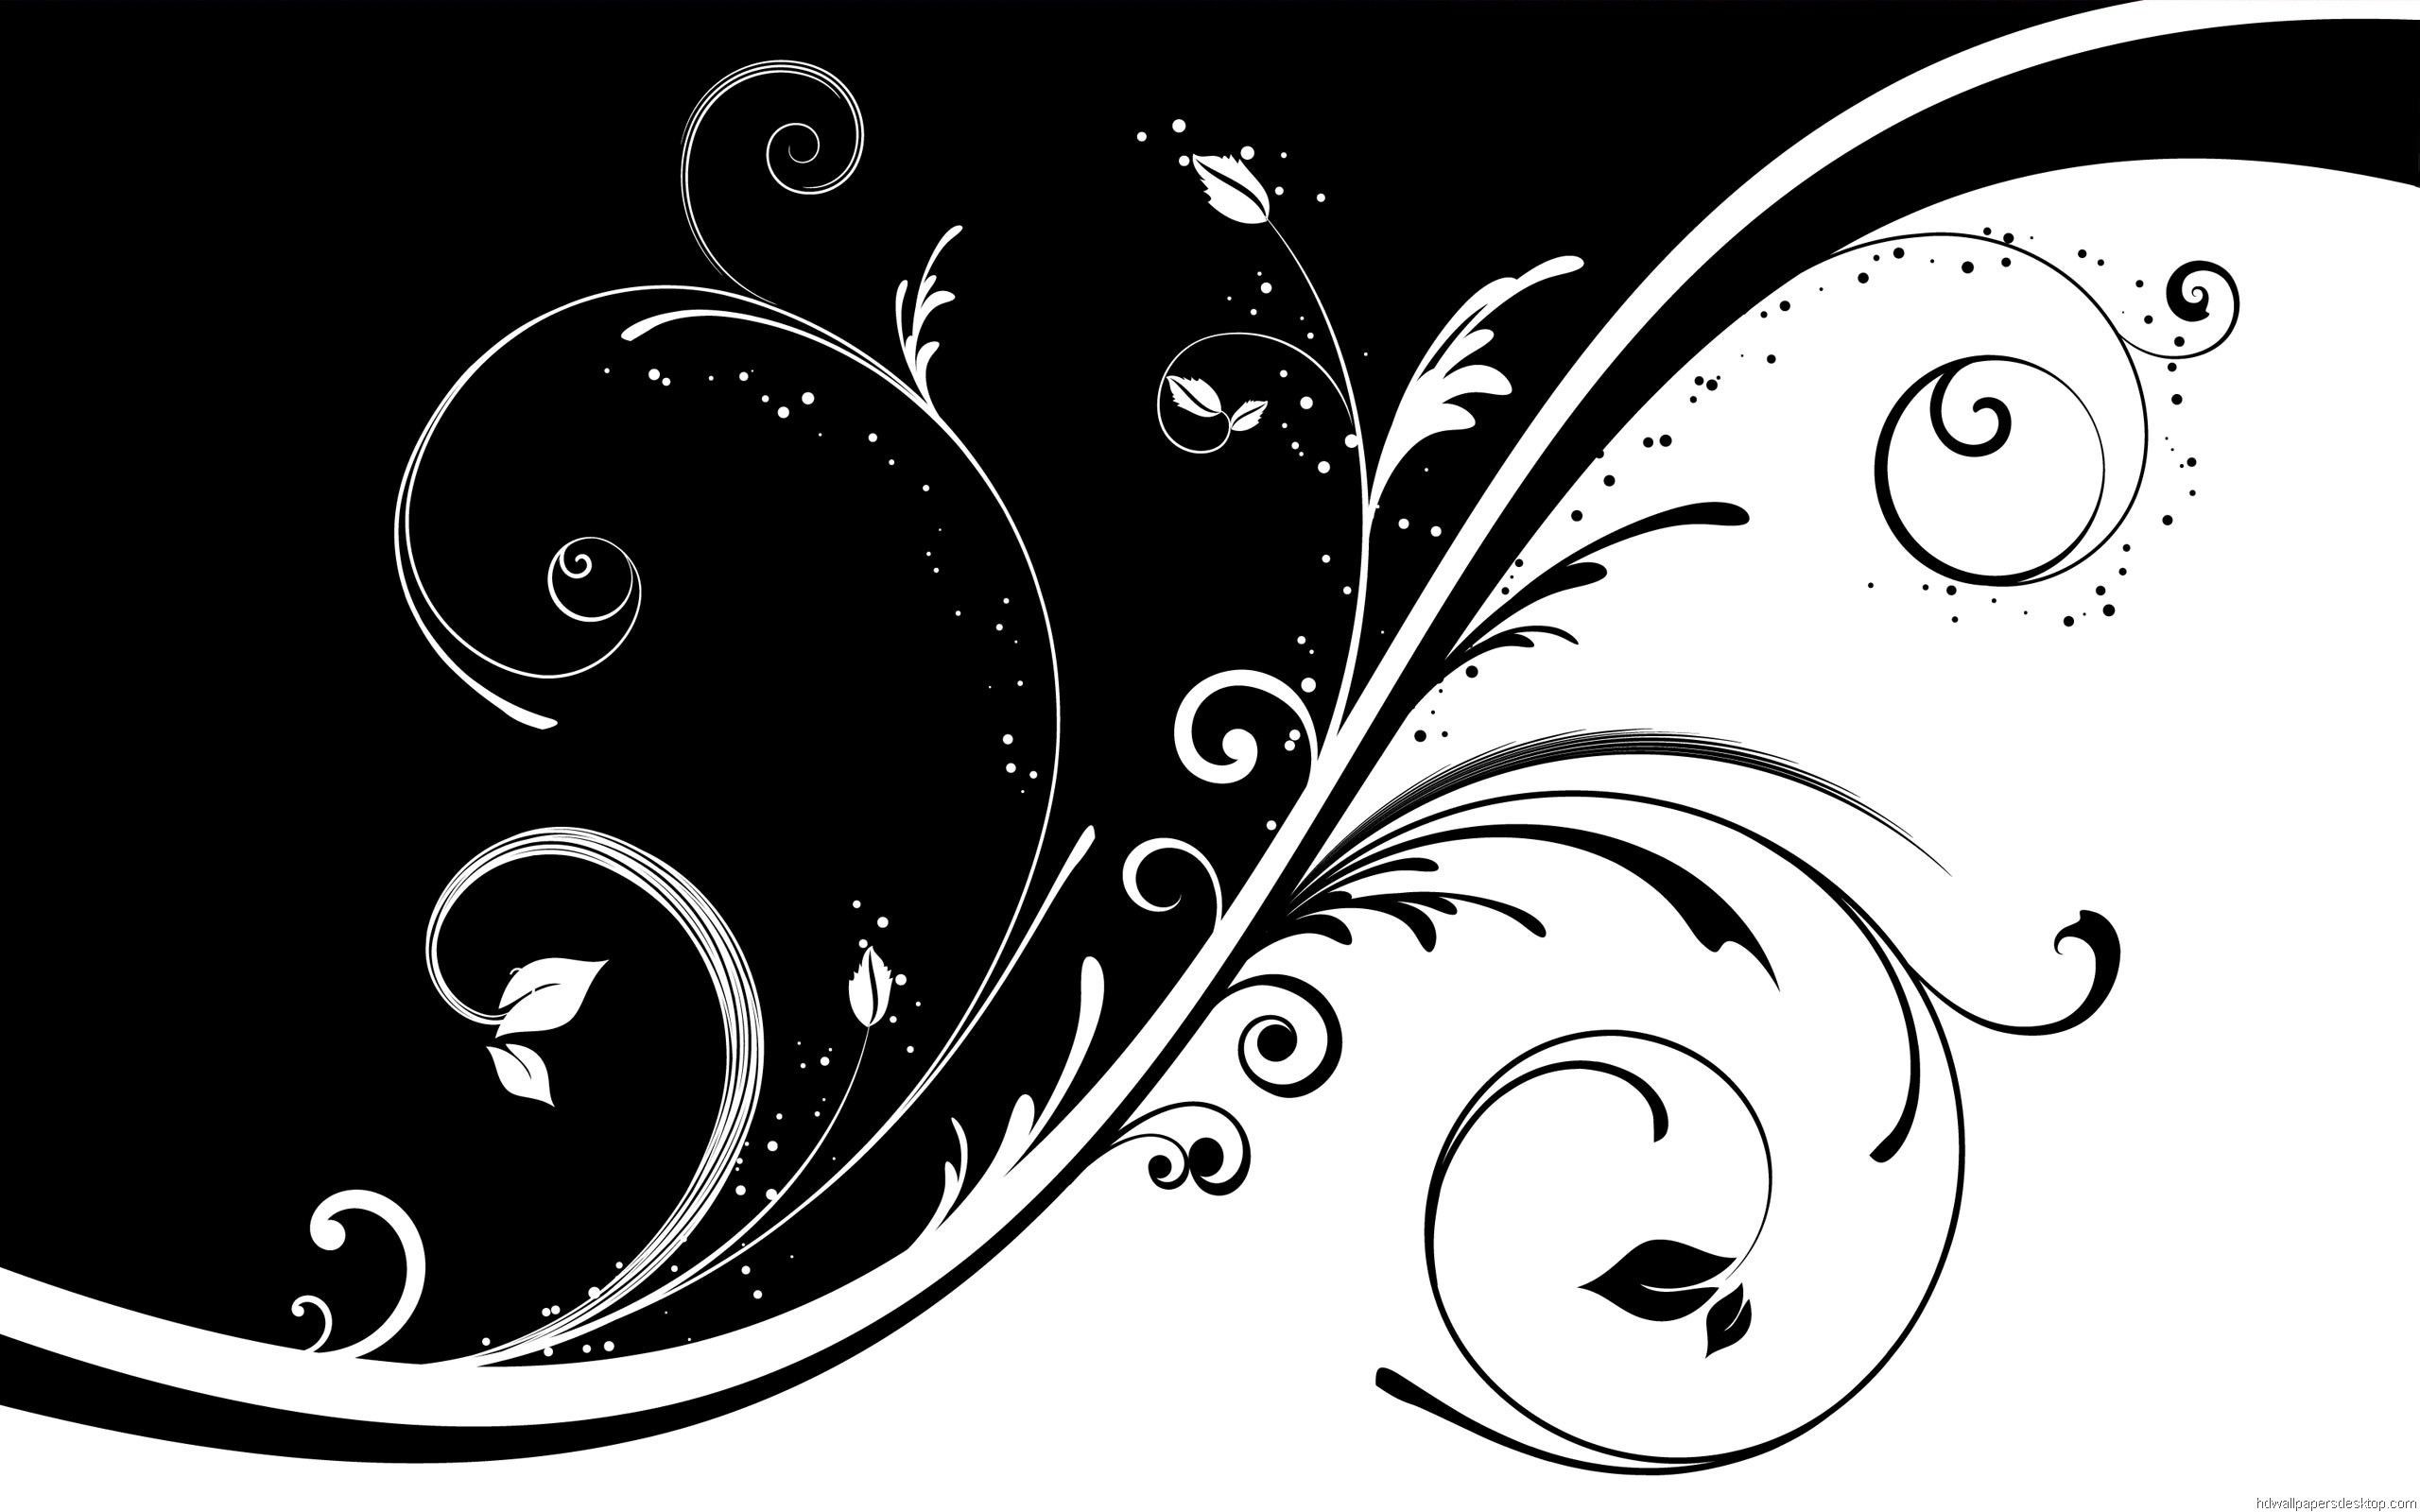 … abstract art wallpaper black and white wallpapers desktop background …